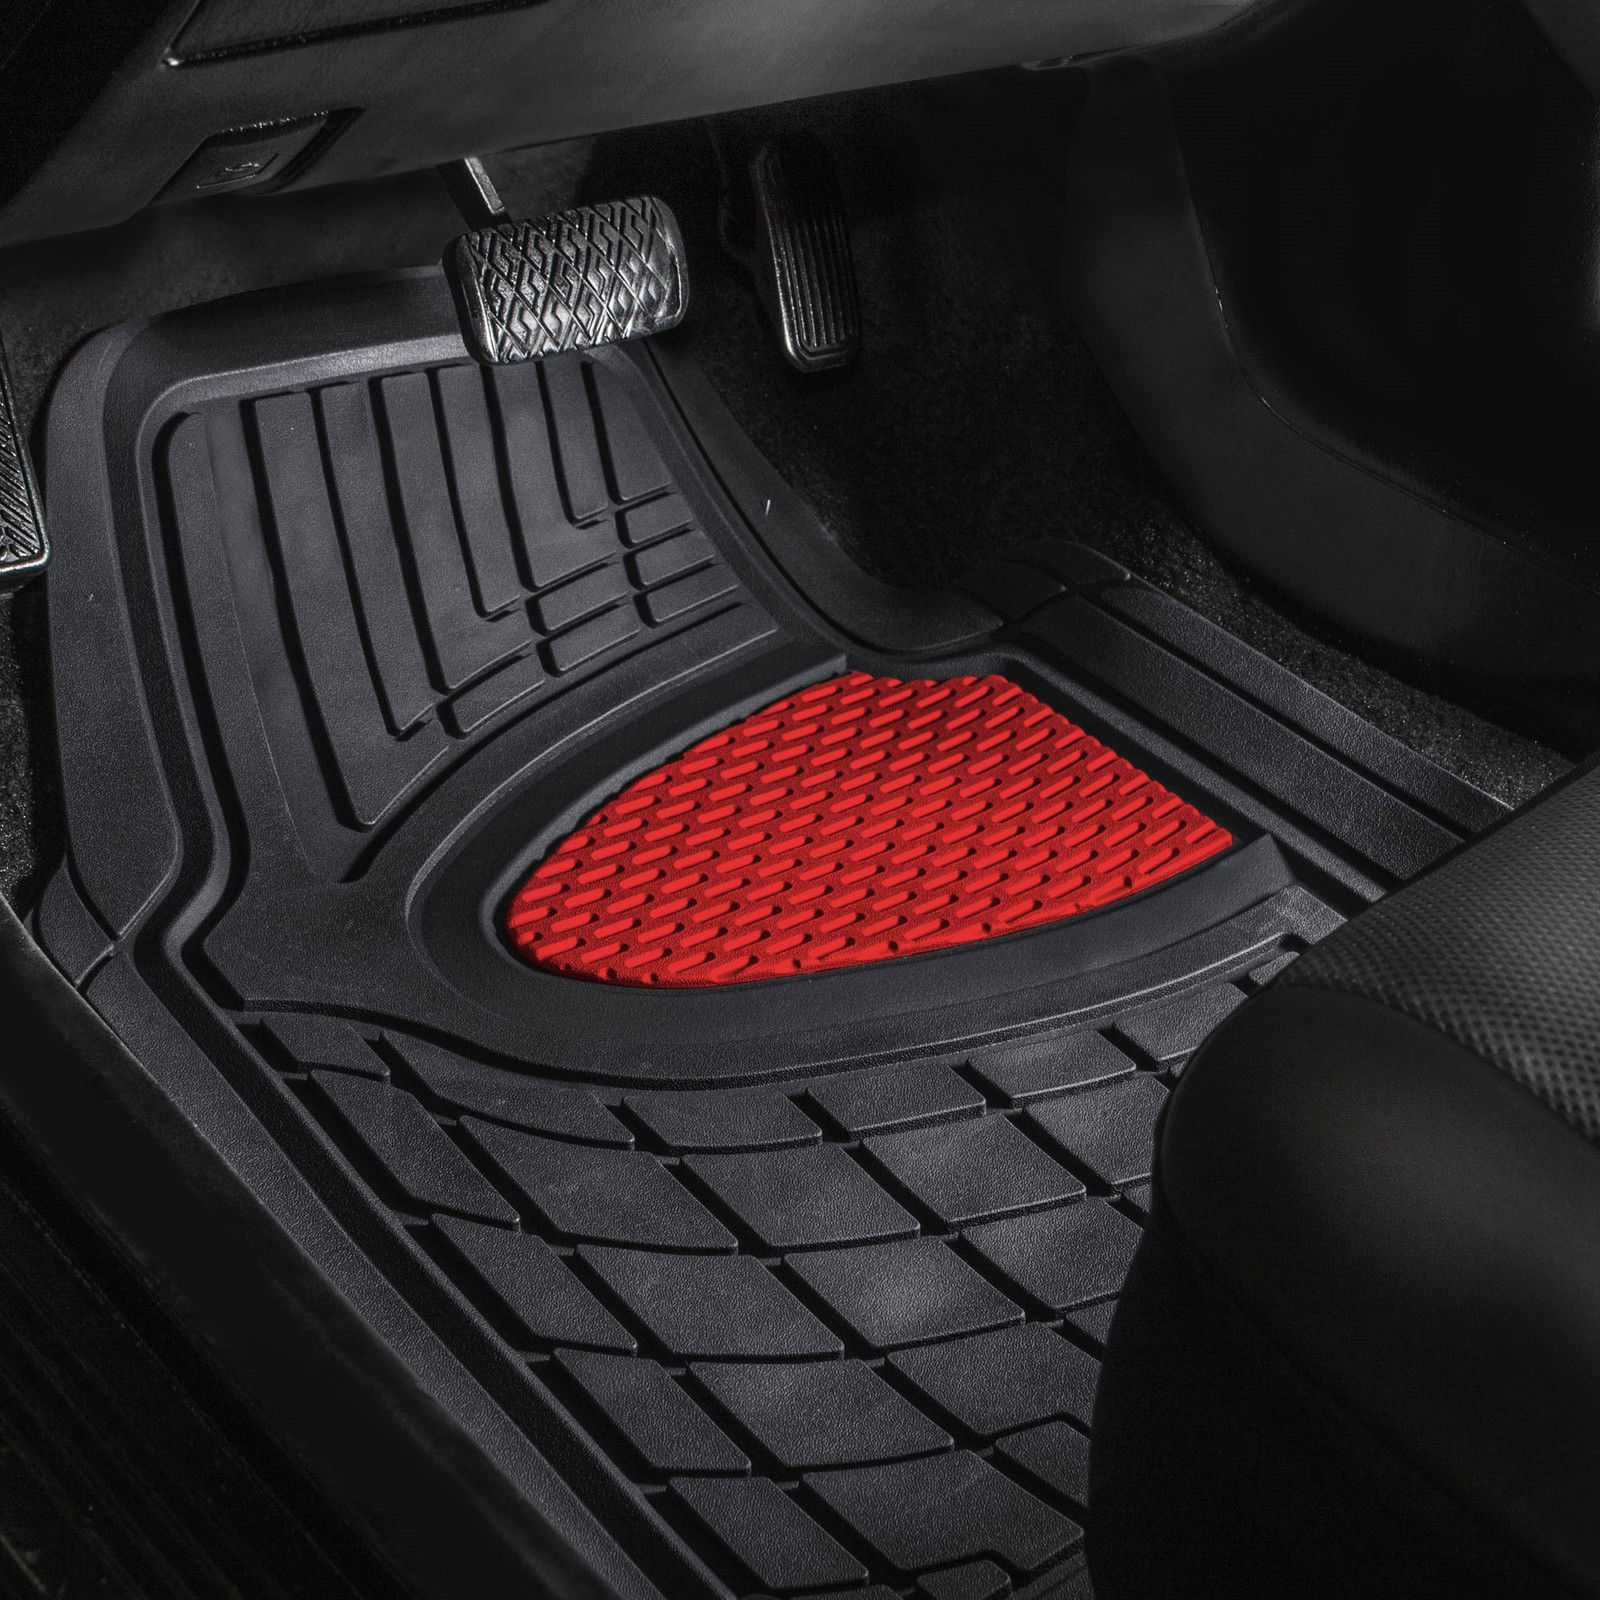 Cool Awesome Car Floor Mats for Auto Car SUV 4pc Set All Weather